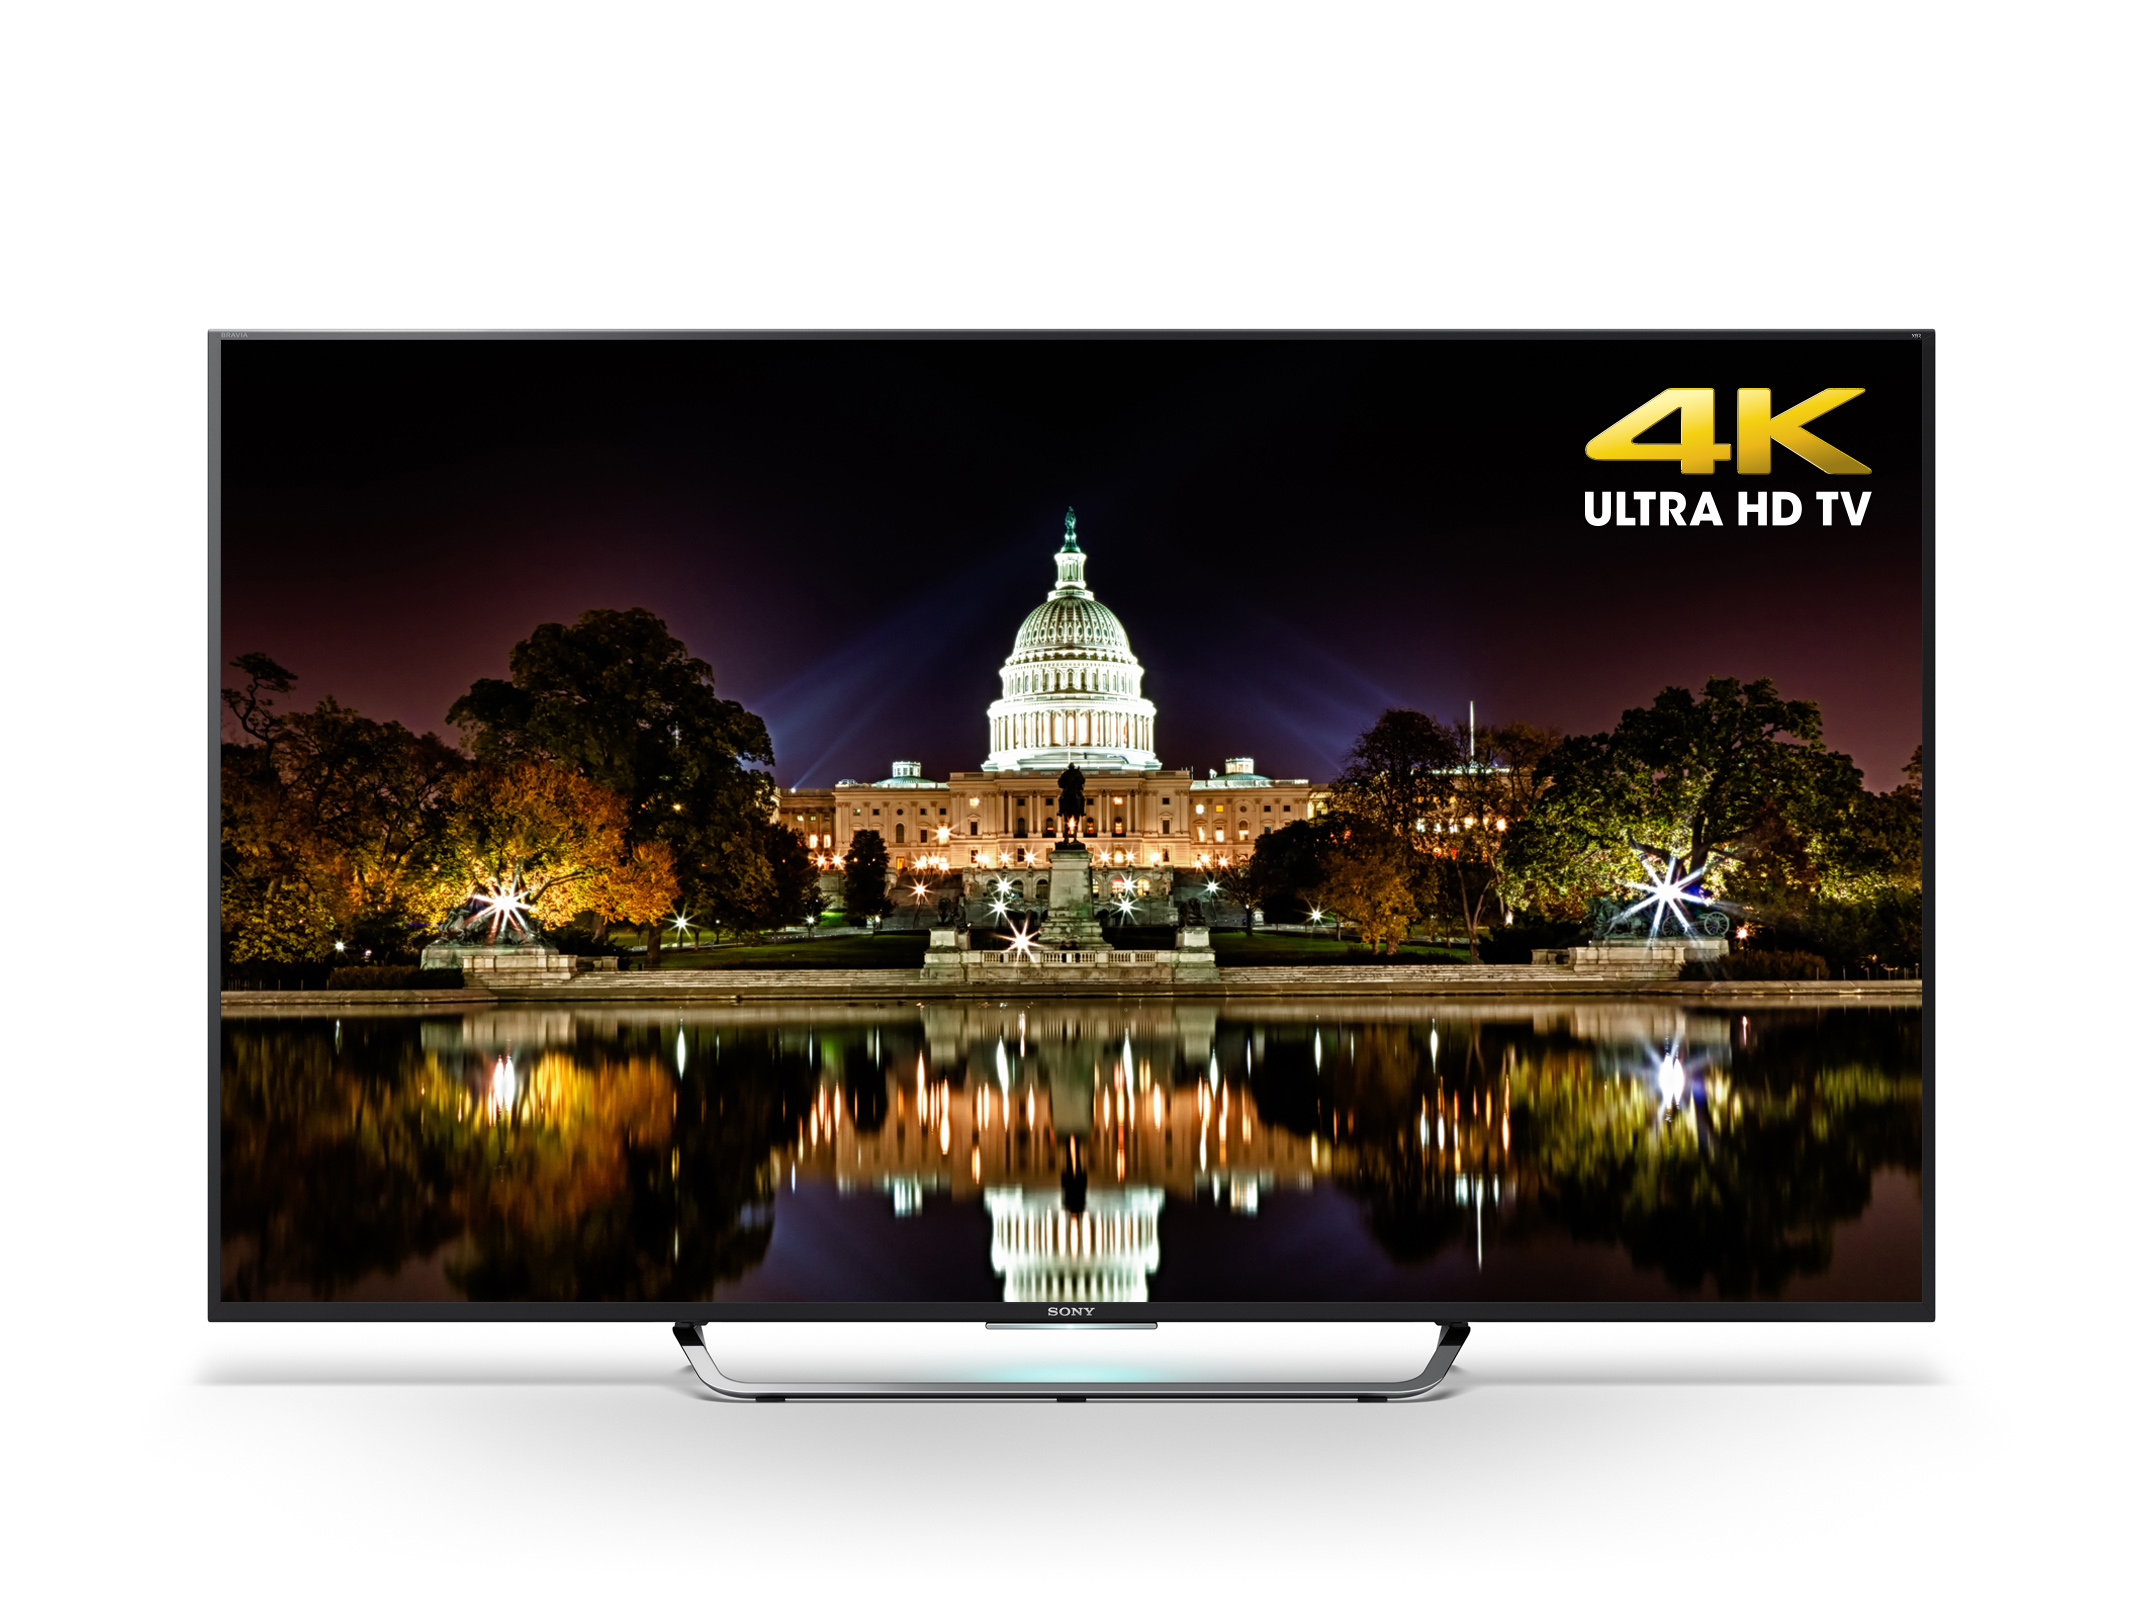 sony electronics launches high dynamic range video support on 2015 4k ultra hd tvs this fal. Black Bedroom Furniture Sets. Home Design Ideas